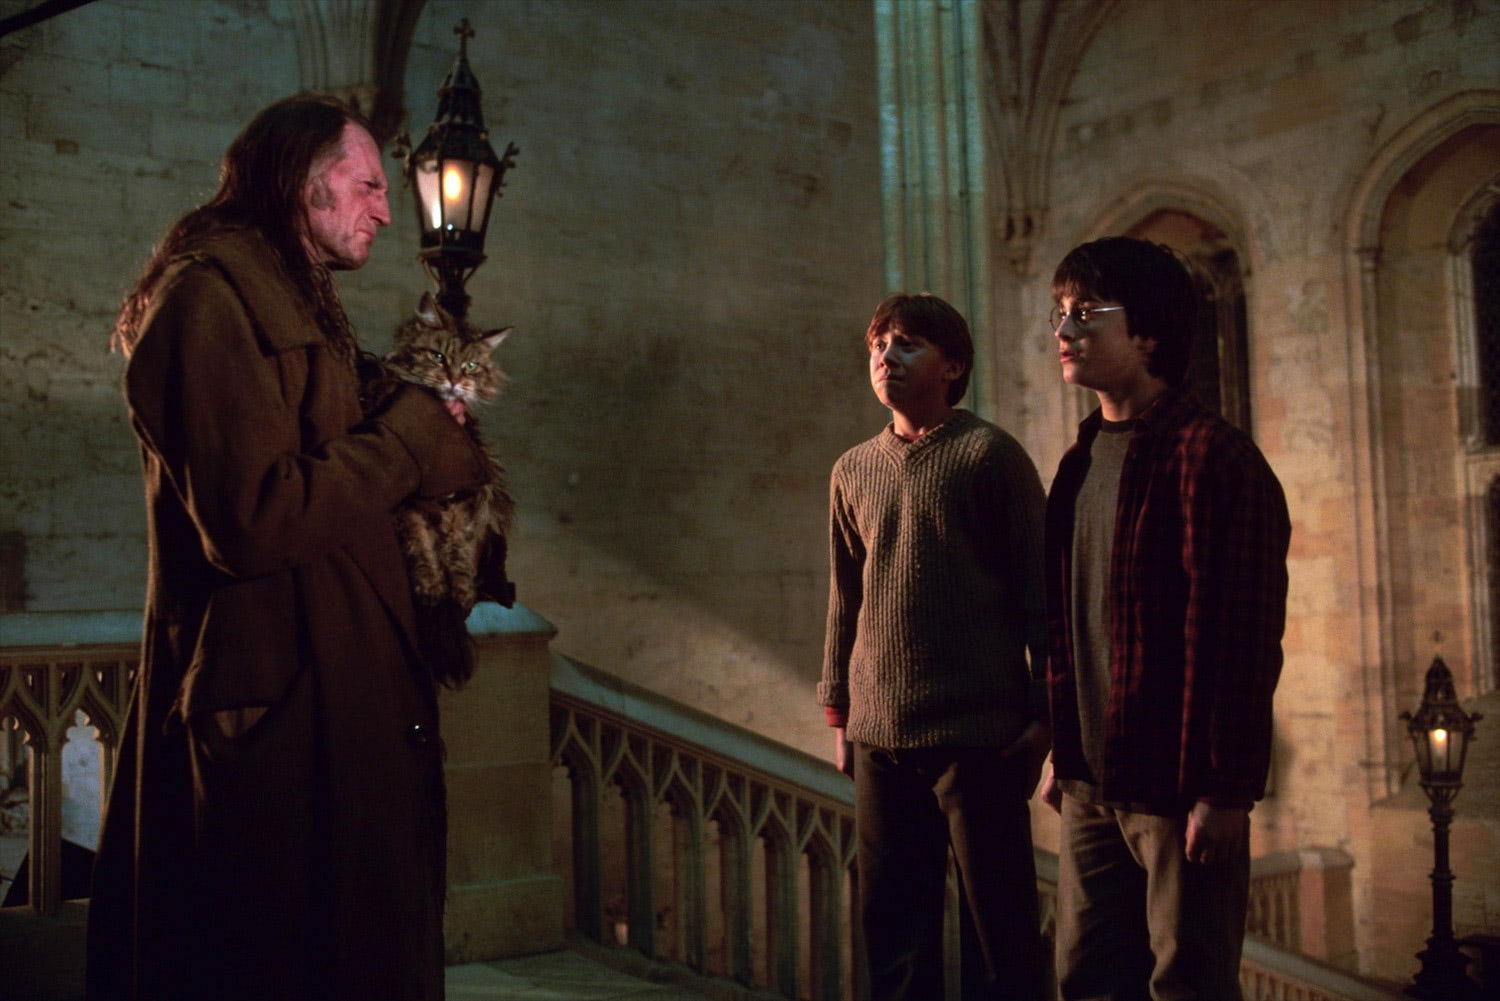 Filch catches Harry and Ron